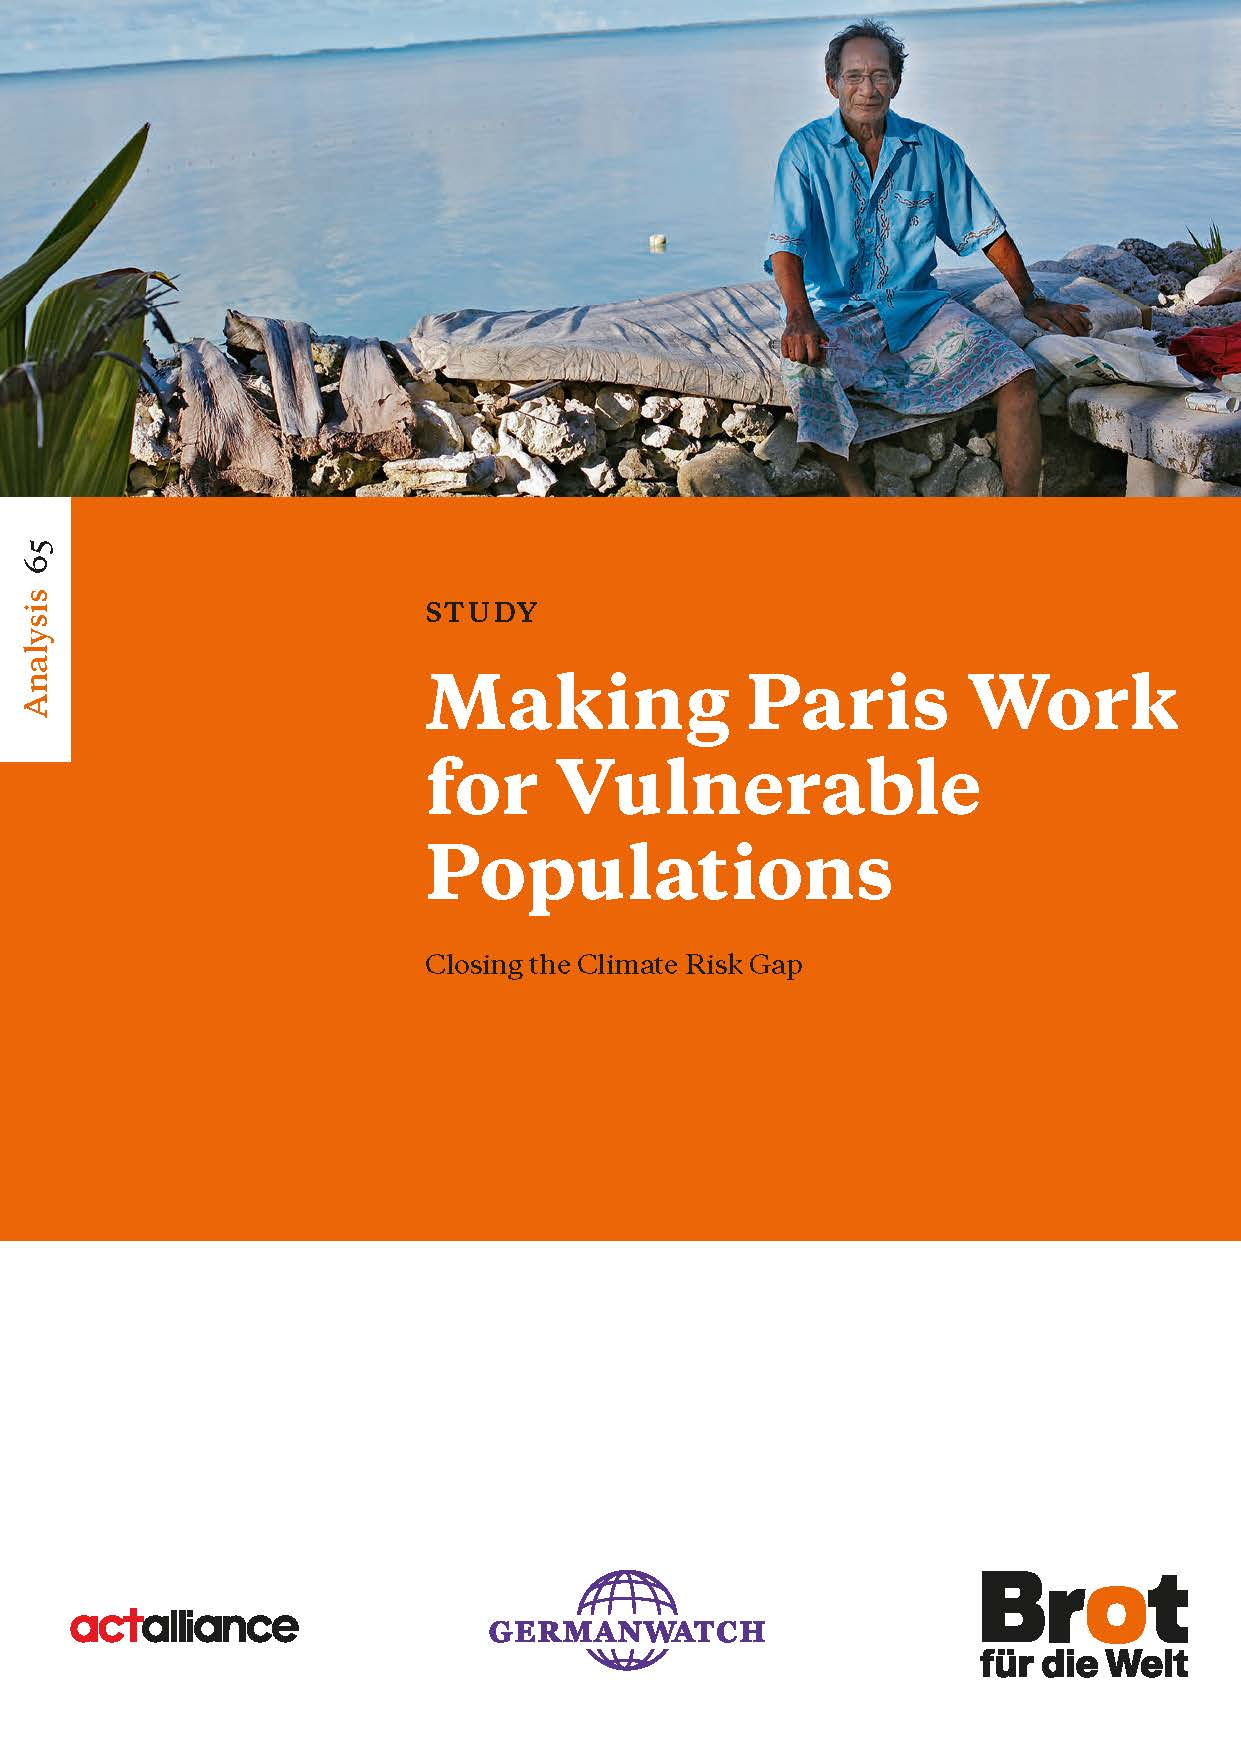 Analysis 65: Making Paris Work for Vulnerable Populations